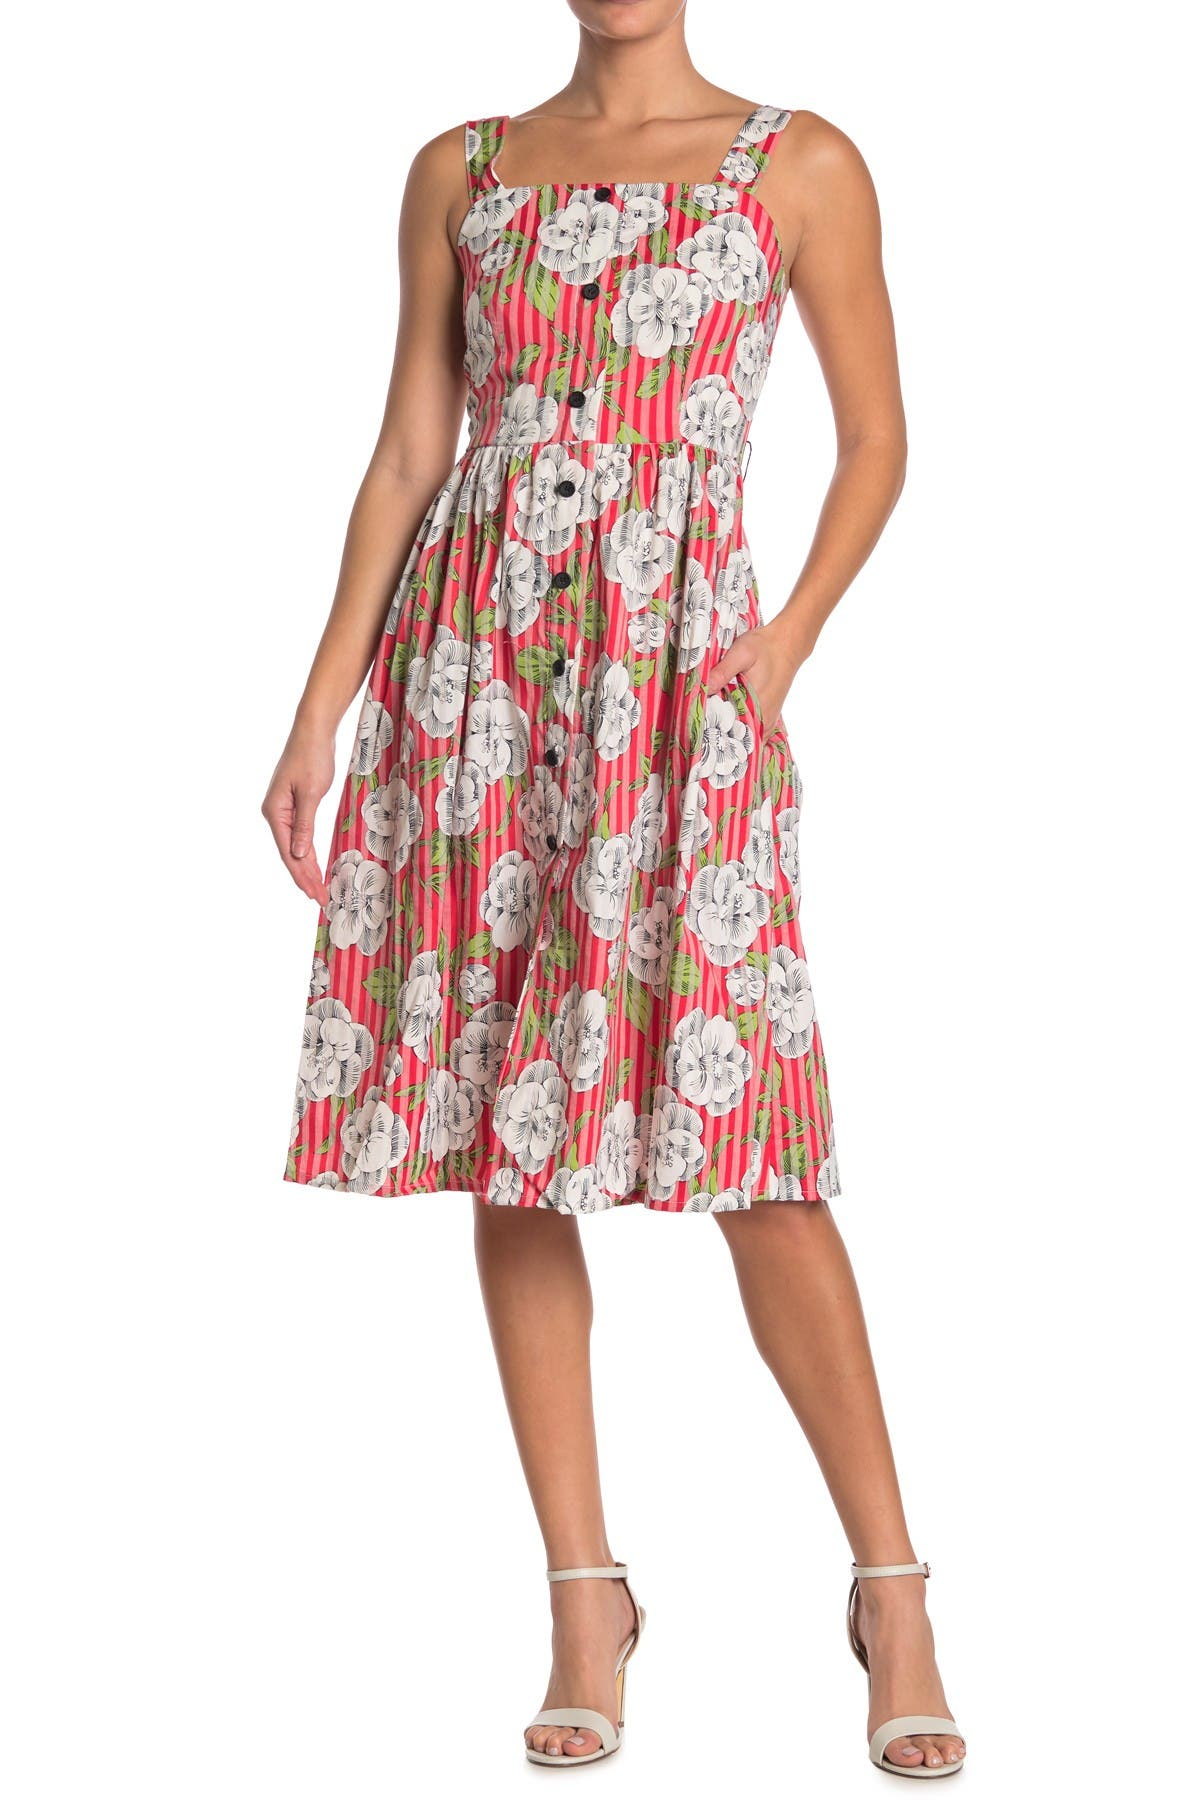 Image of SEE U SOON Floral Stripe Button Front Dress